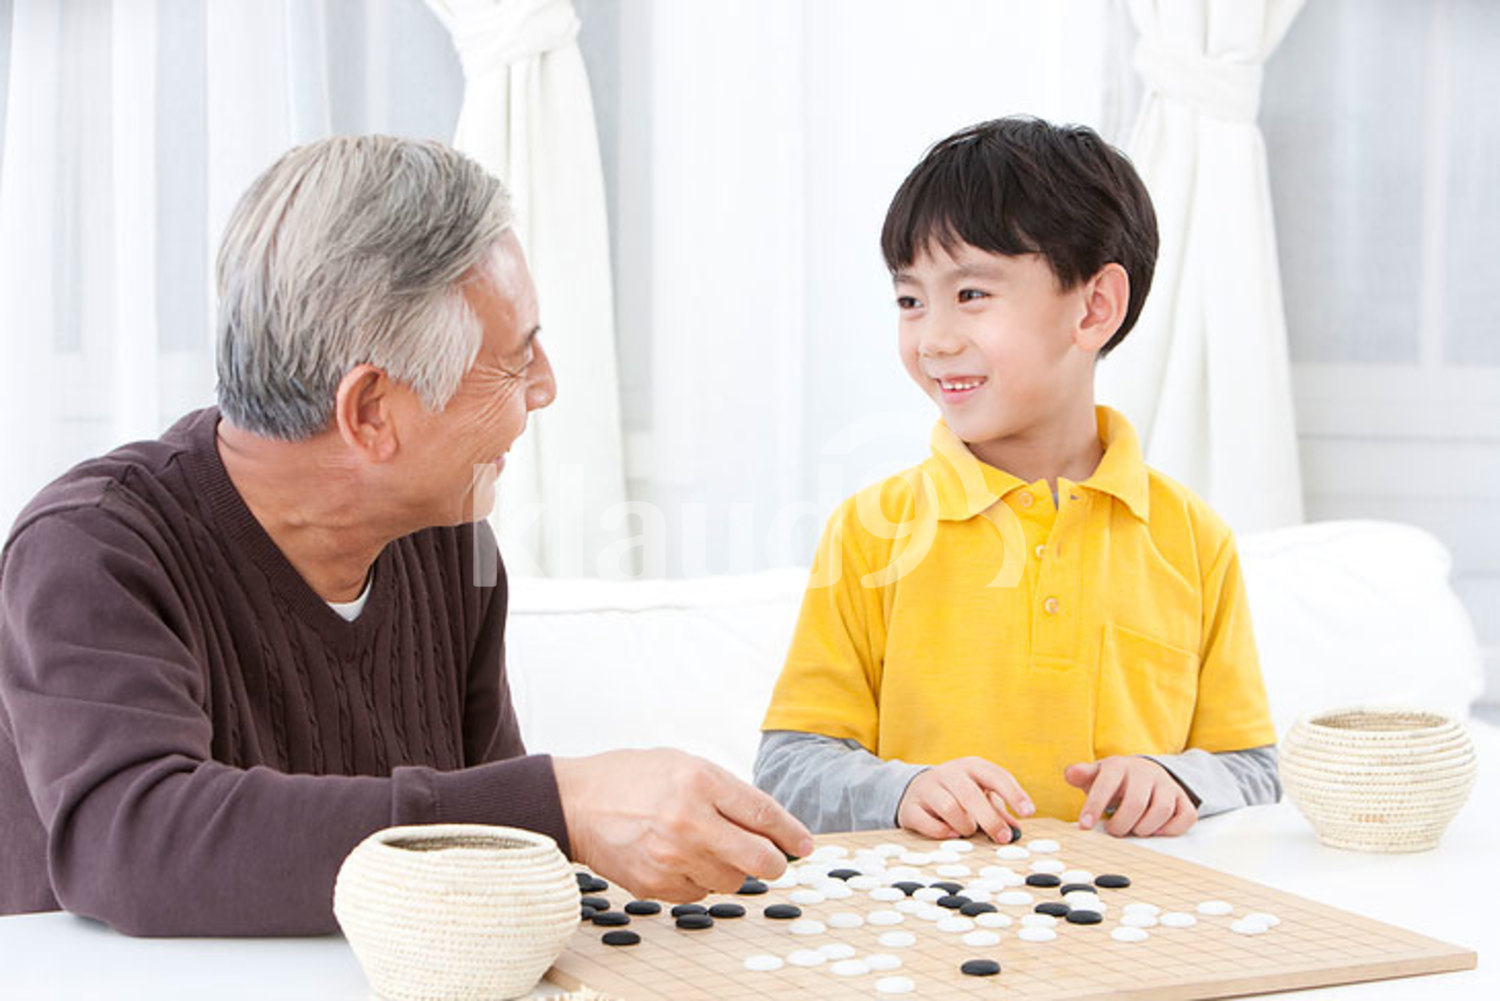 Chinese grandpa and grandson playing the game of Go